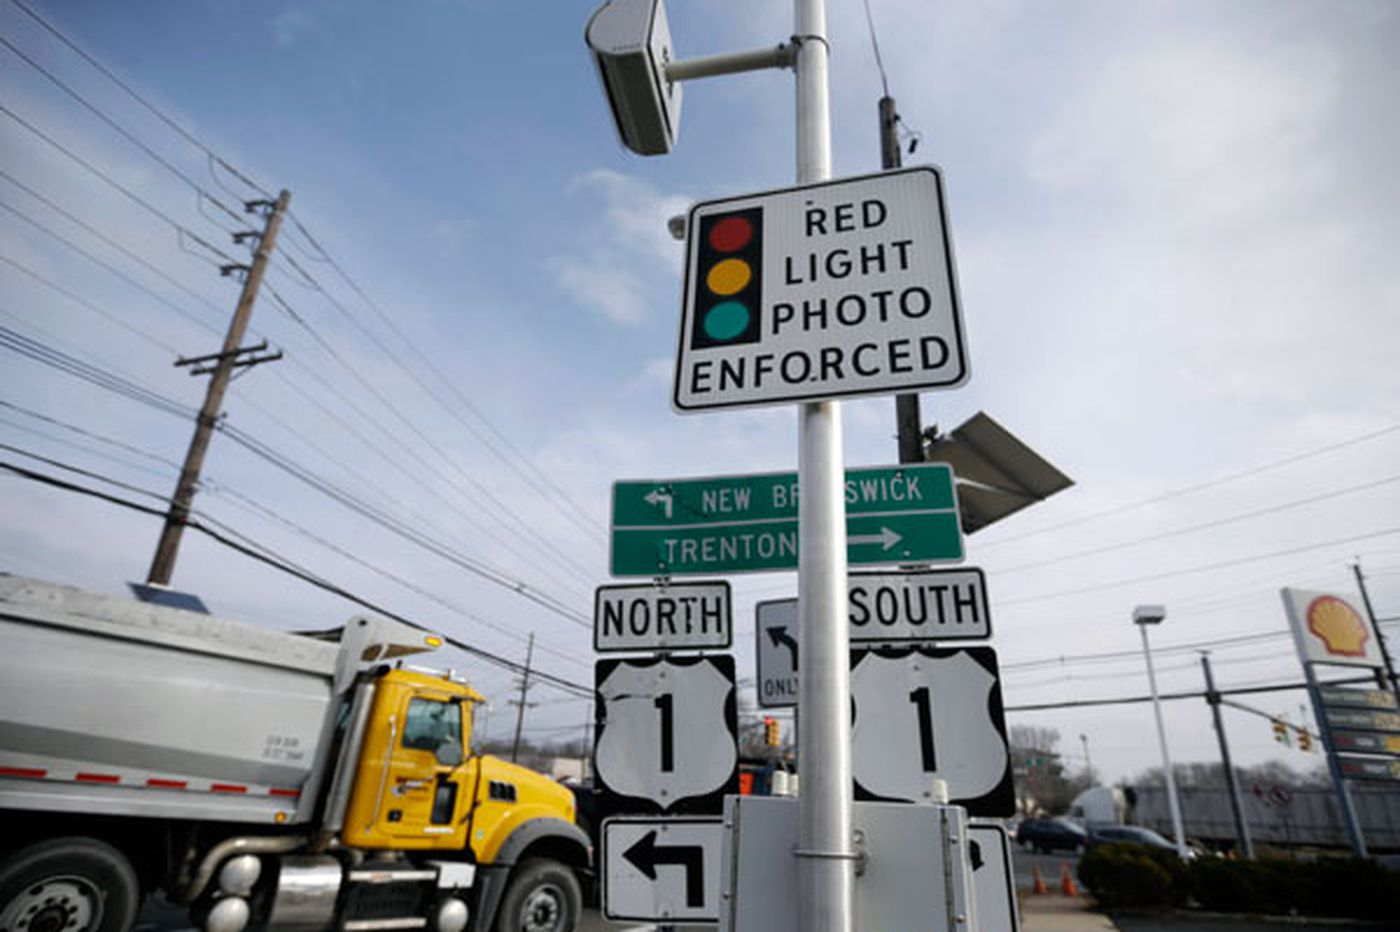 Not enough evidence to evaluate red-light cameras